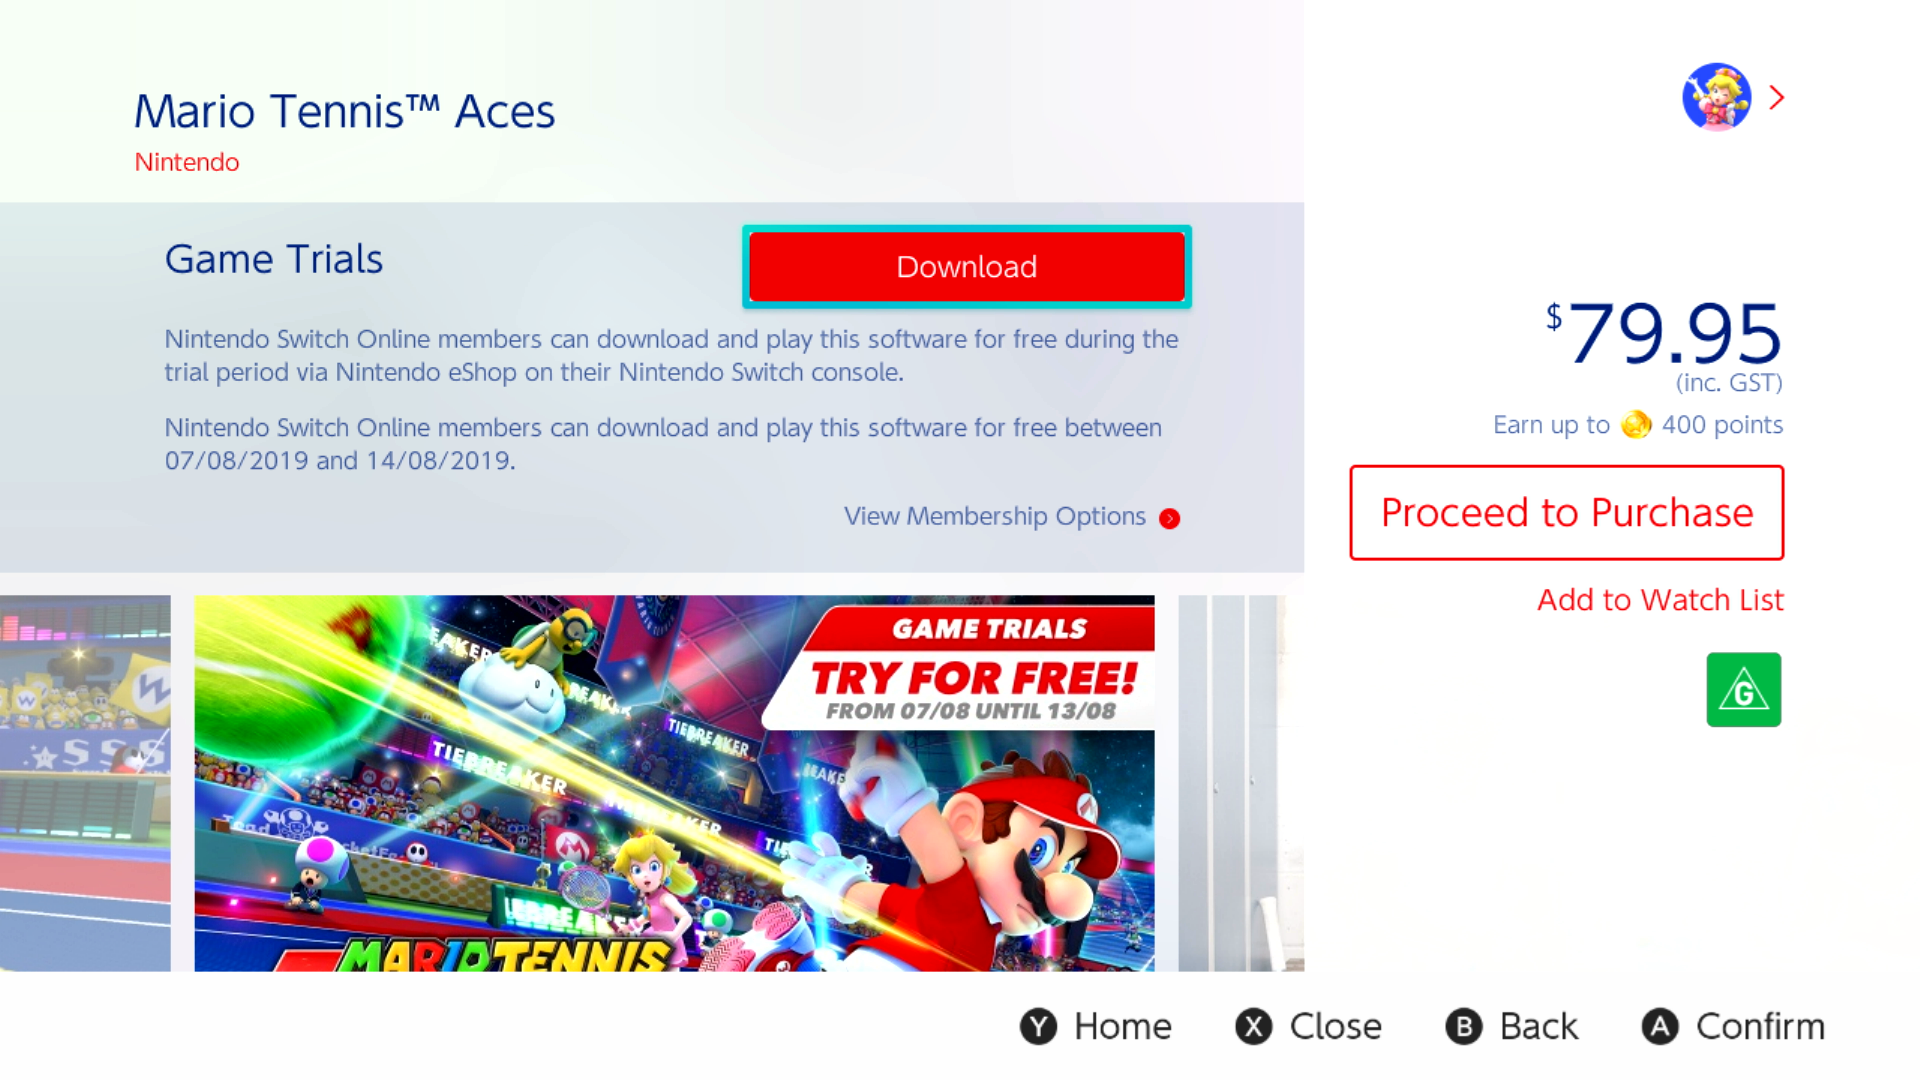 Play Mario Tennis Aces for FREE from 87 to 813